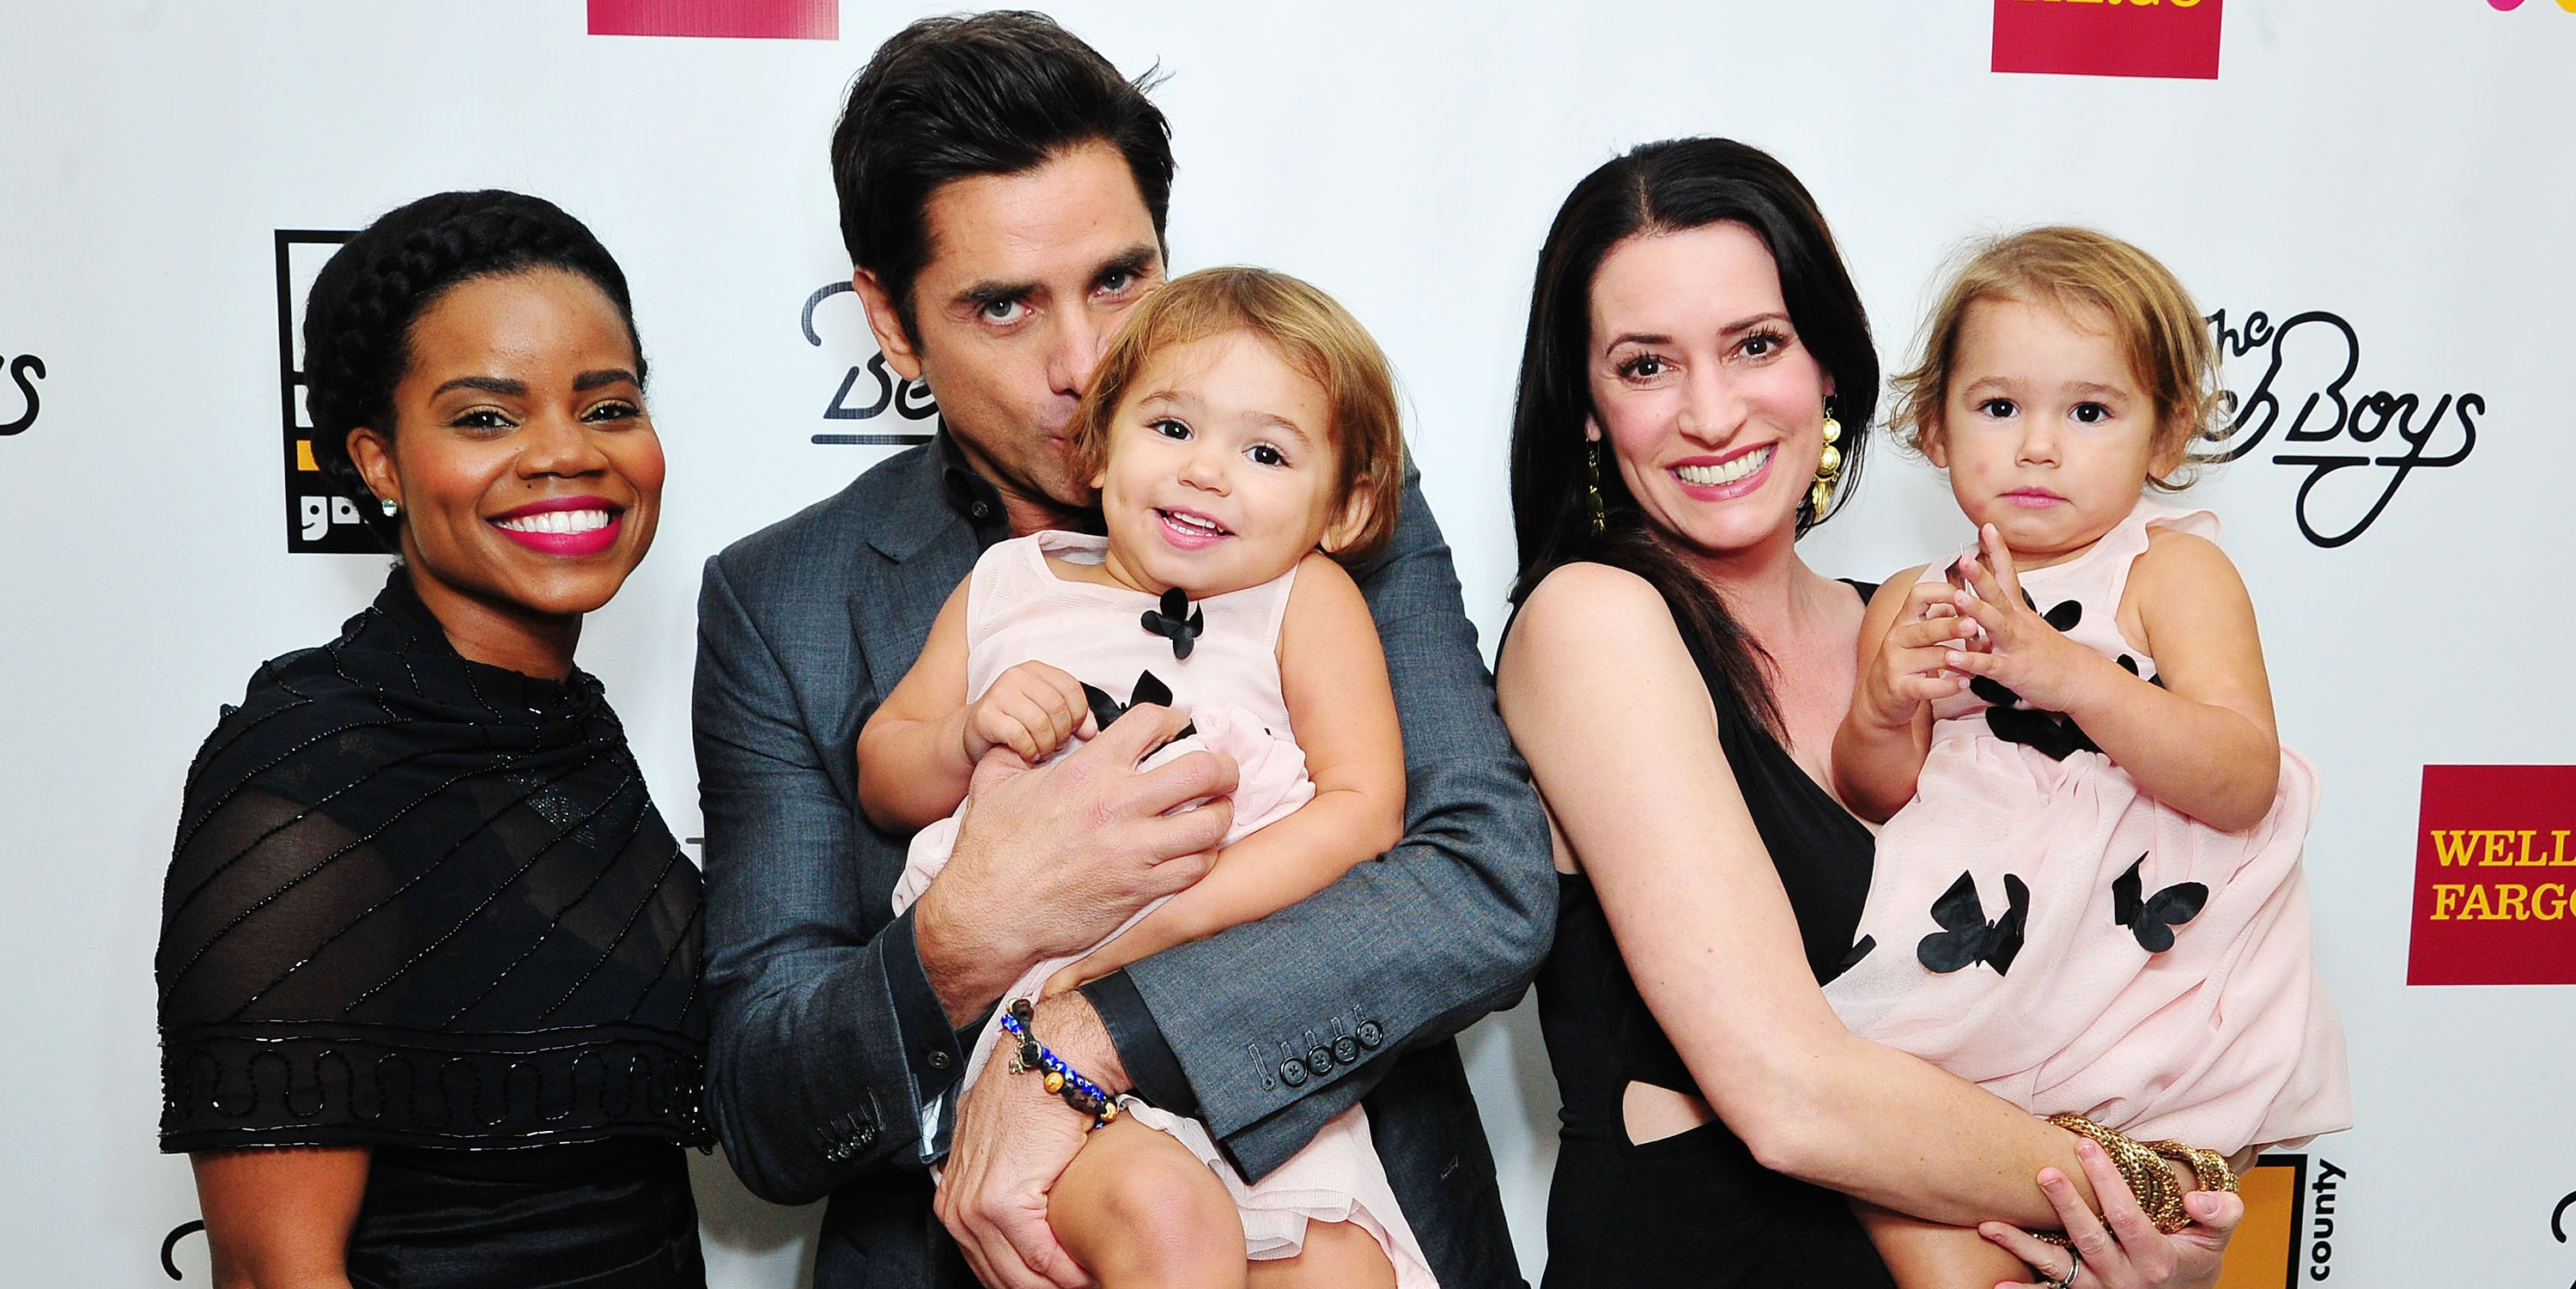 John Stamos Opens Up About Kids On Having